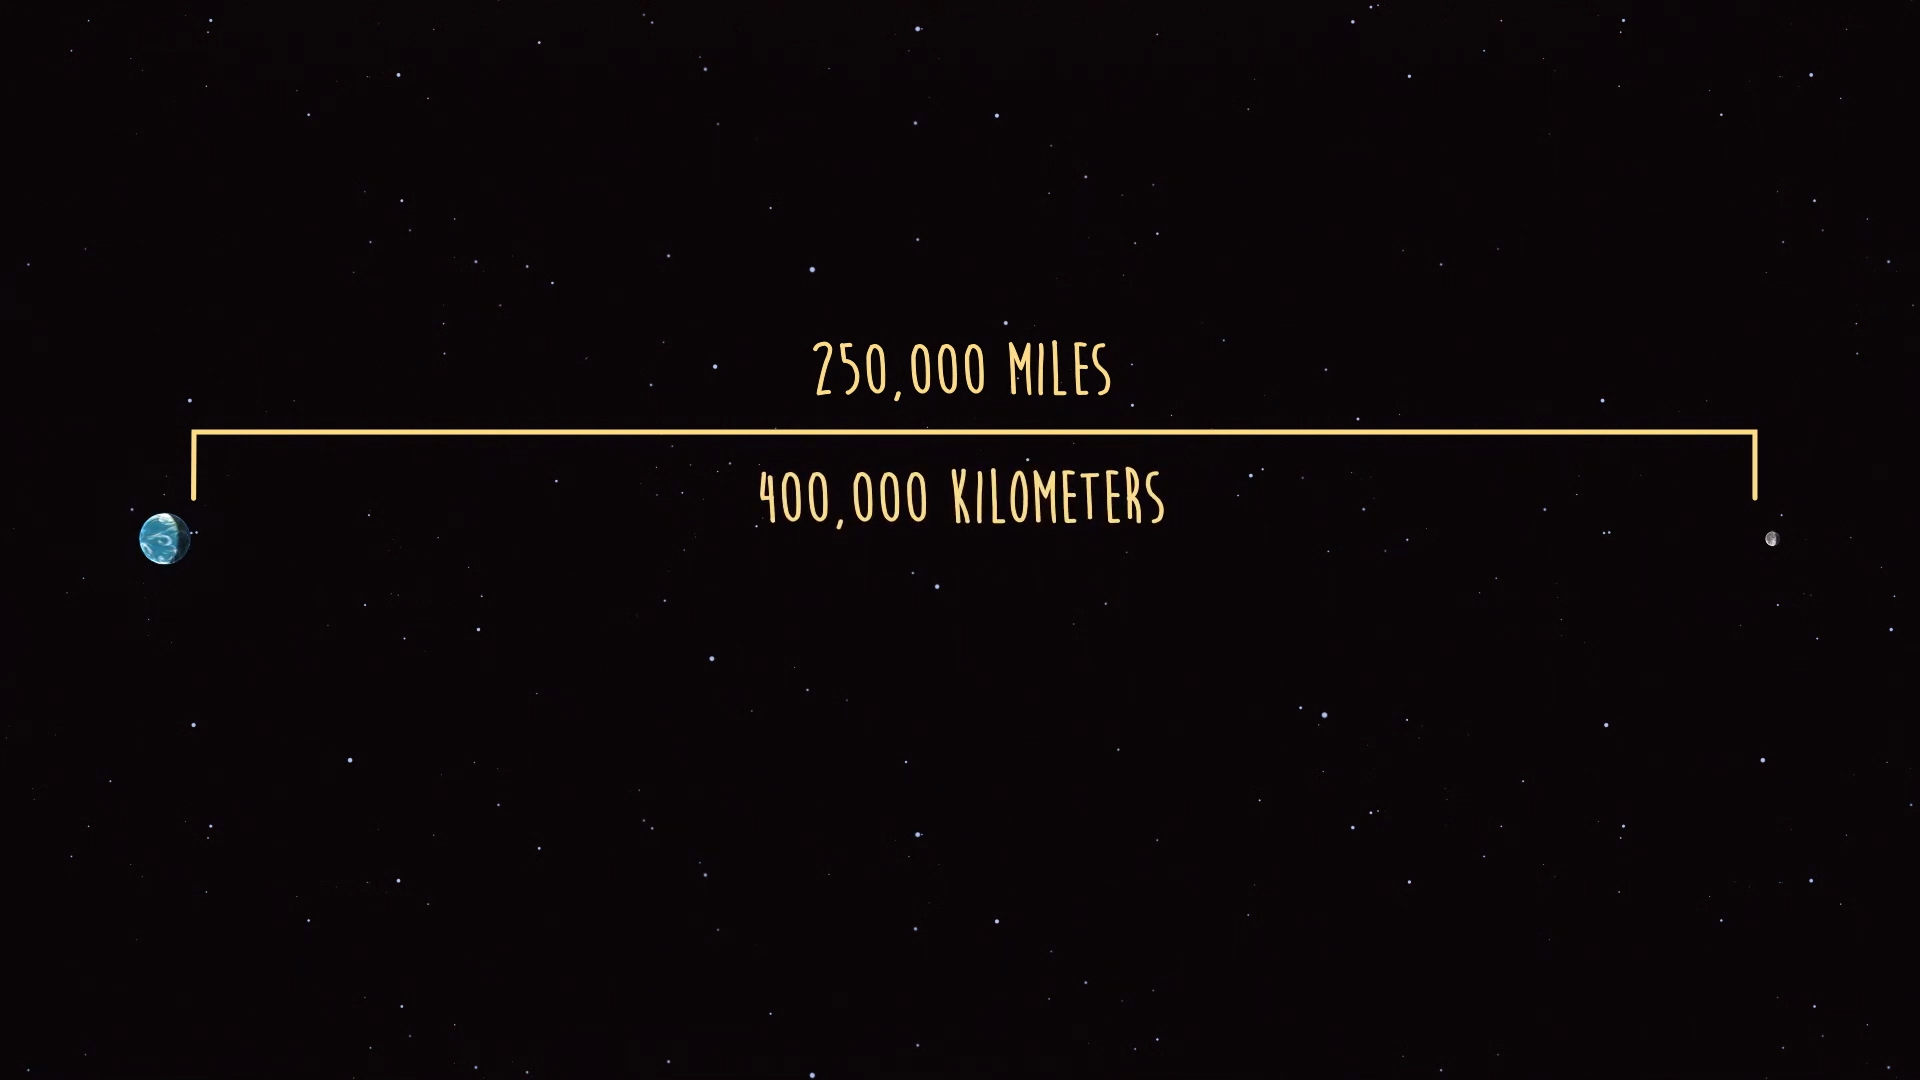 Illustration showing distance between Earth and Moon is 250,000 miles or about 400,000 kilometers.